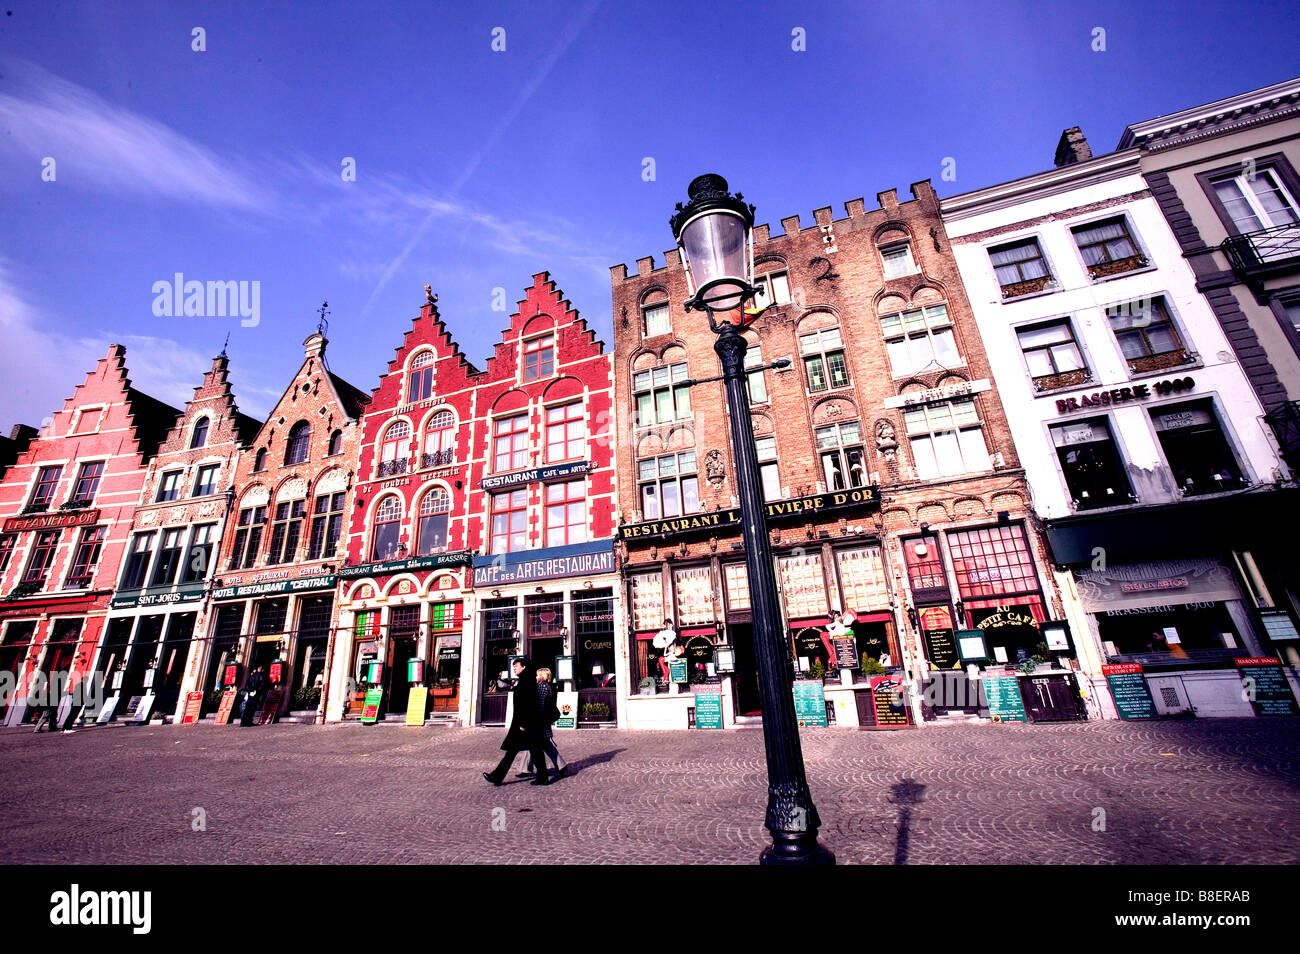 A row of cafes in the main square of Bruges Belgium - Stock Image